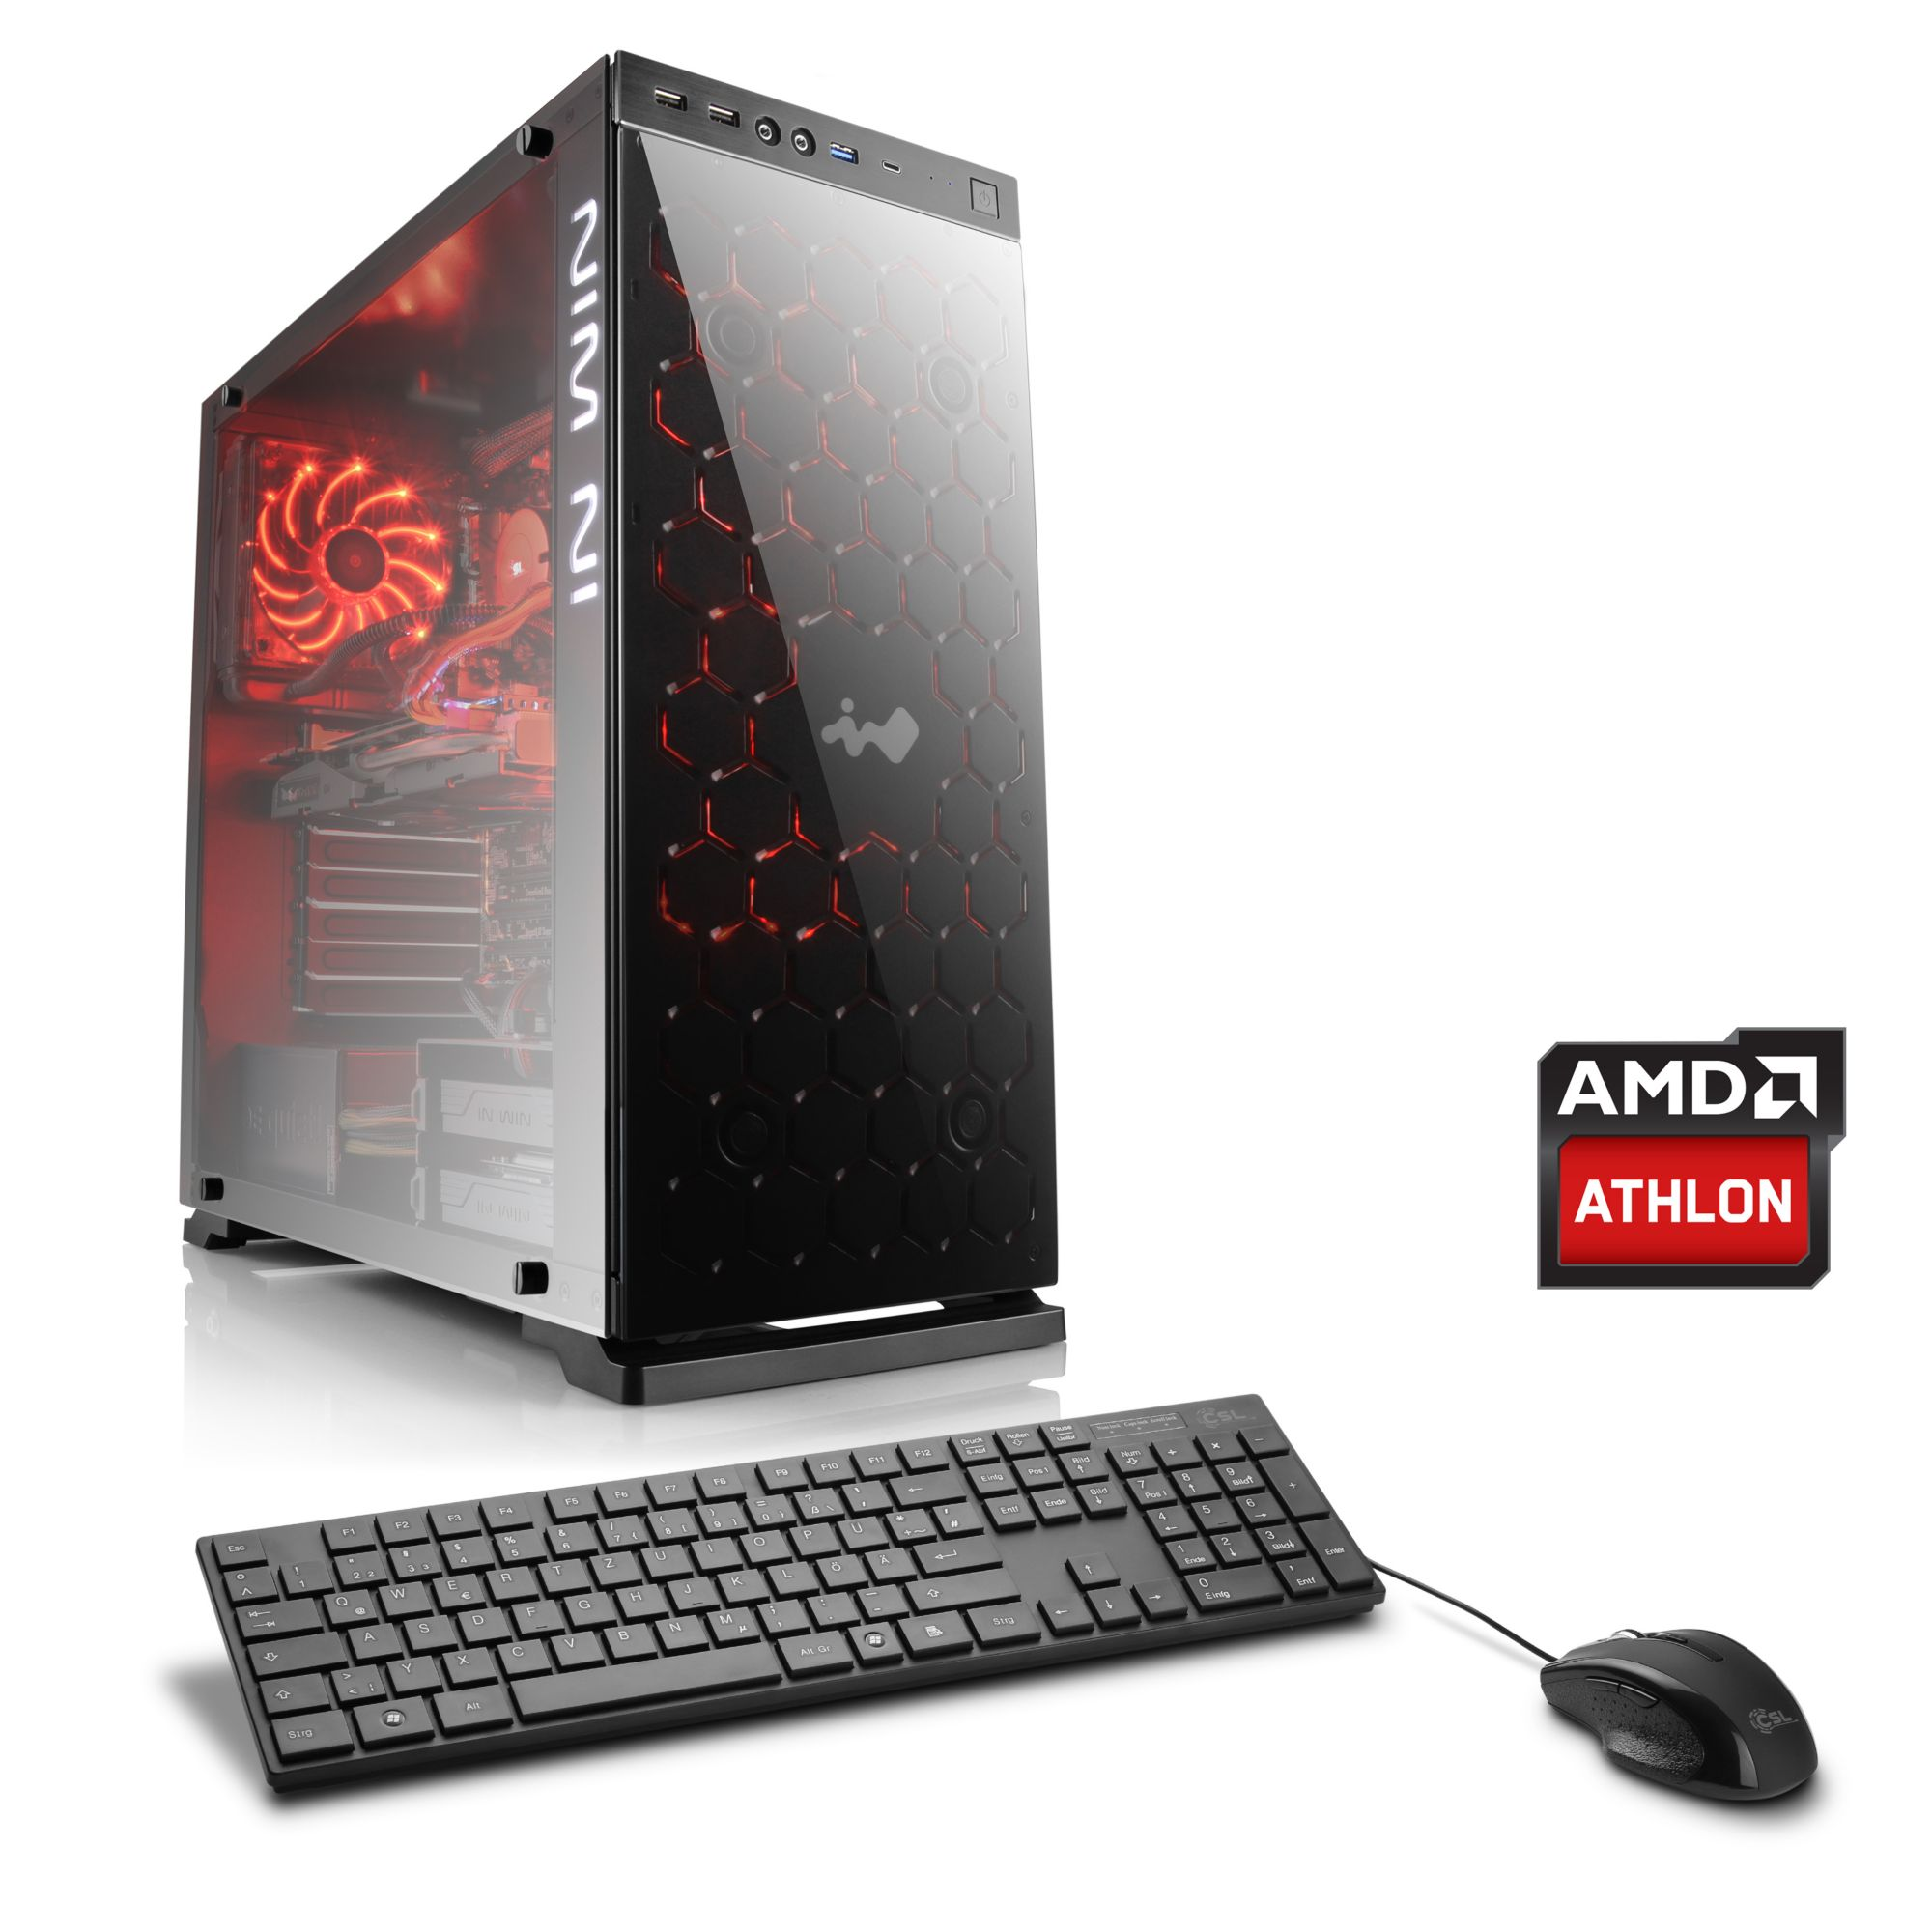 CSL  Gaming PC | AMD Athlon X4 880K | GeForce GTX 1050 Ti | 8 GB RAM »Levitas T4260 Windows 10«